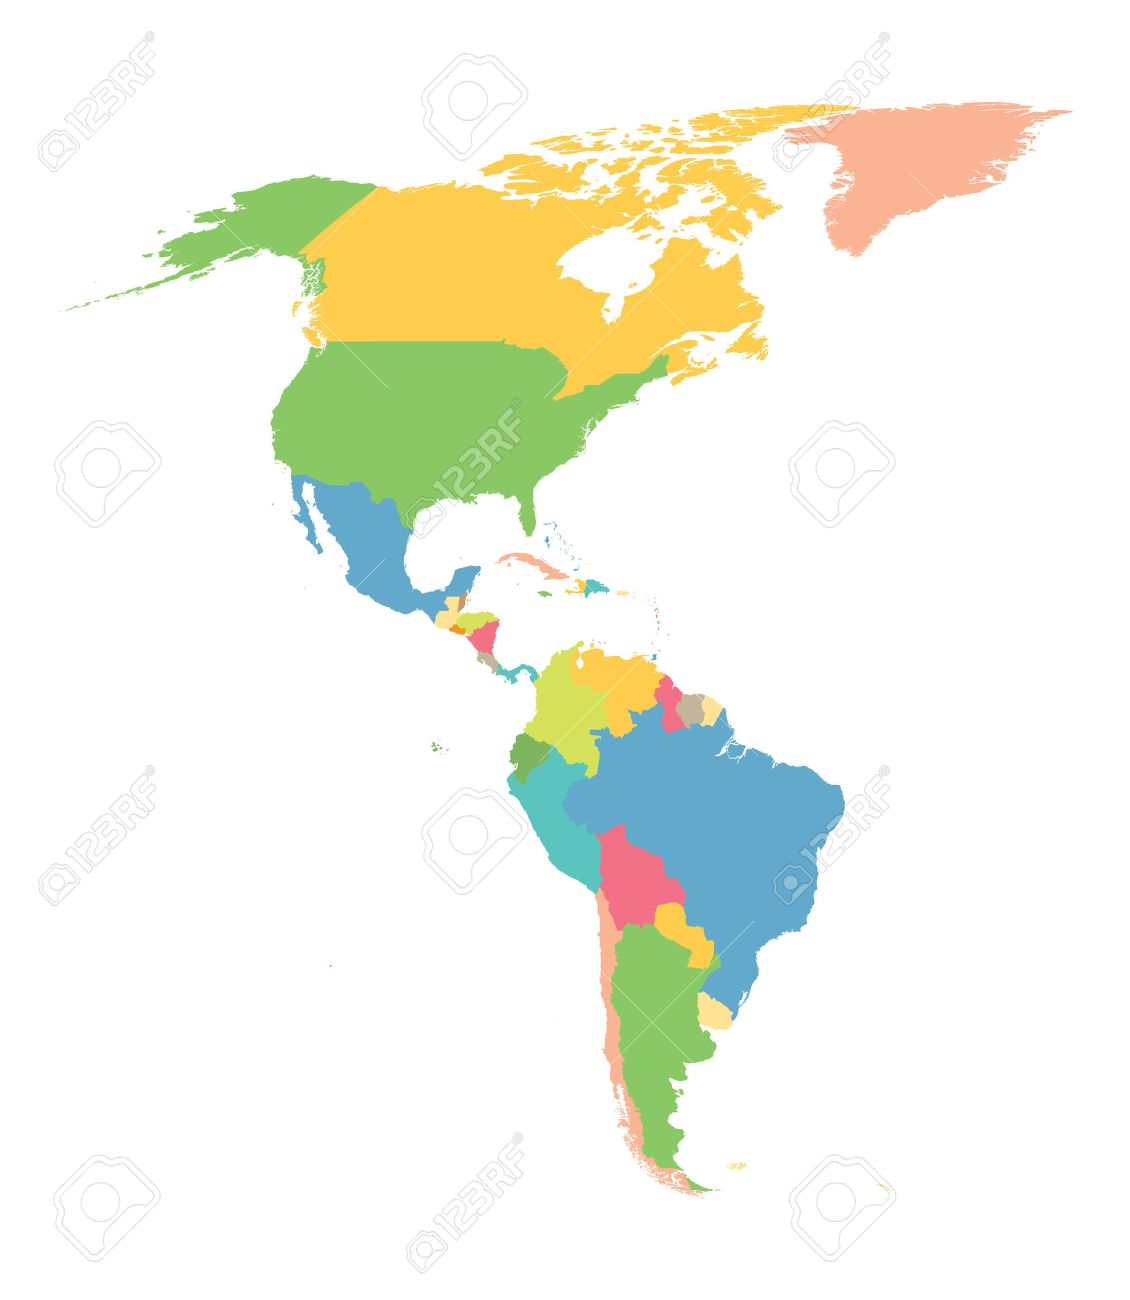 colorful map of north and south america royalty free cliparts rh 123rf com